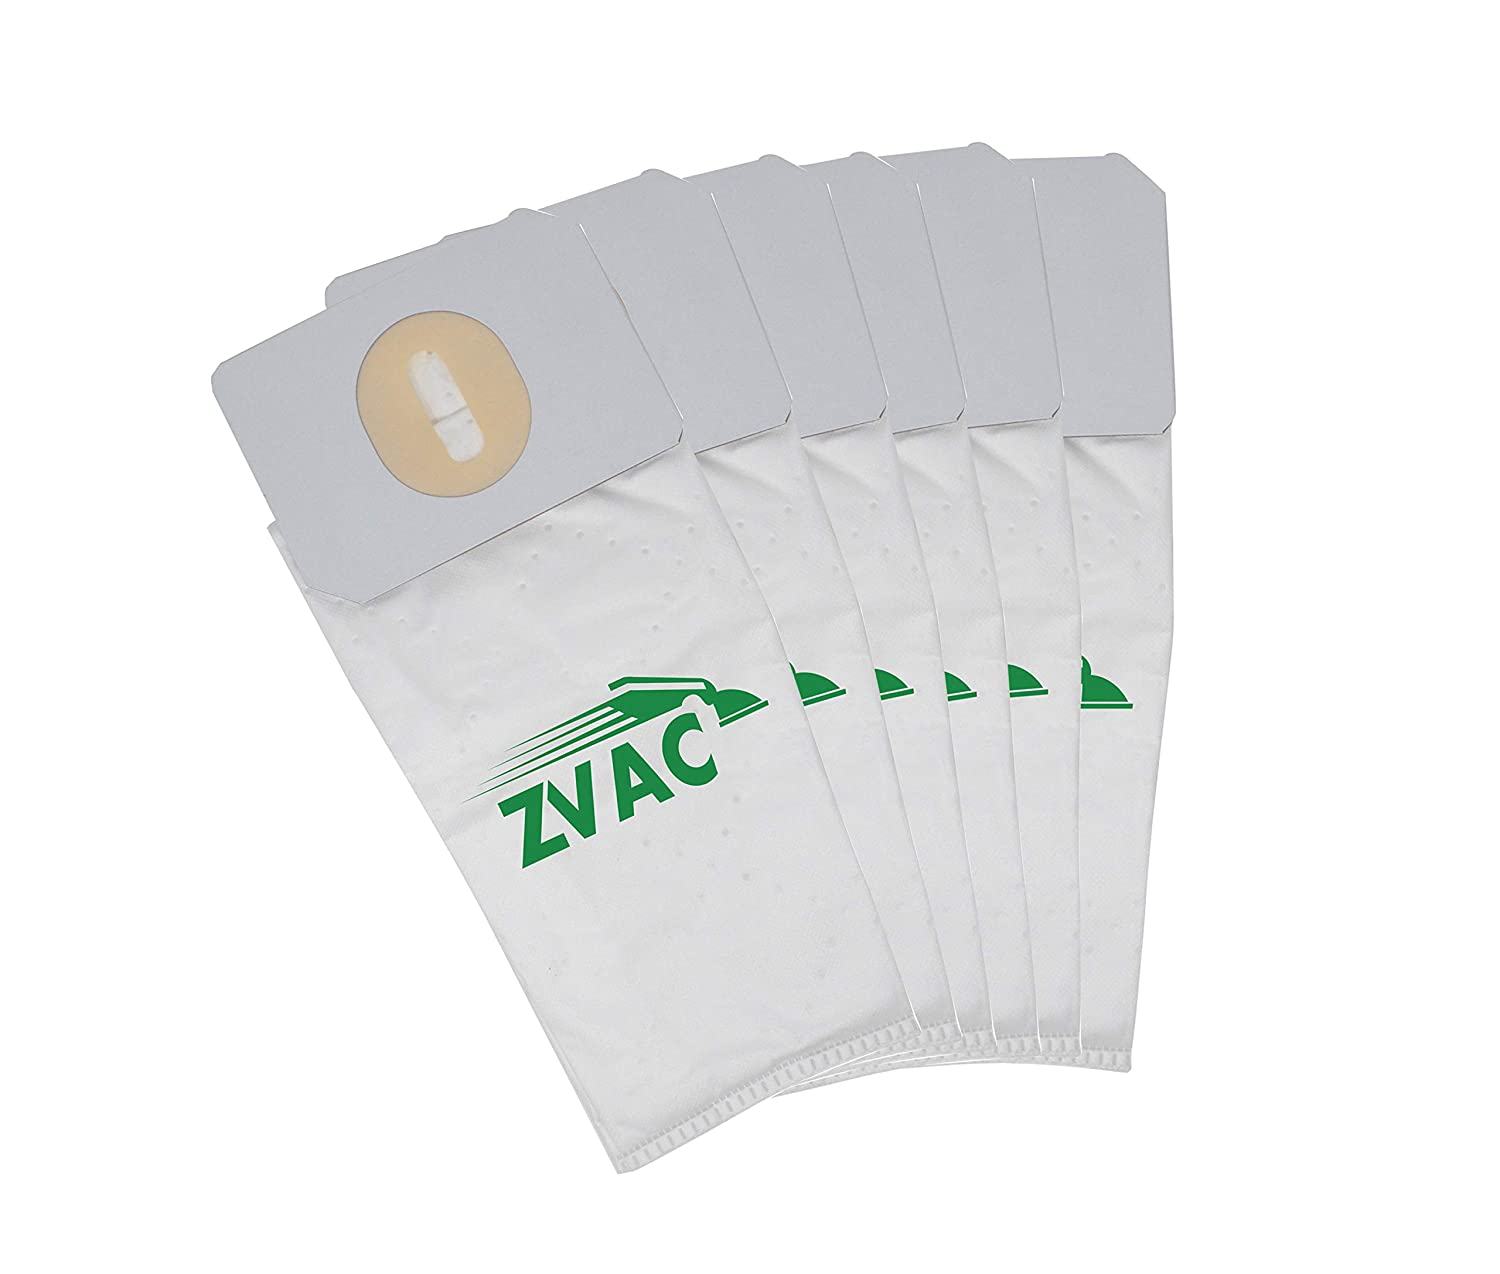 ZVac 6 Premium Proteam Upright Bags Made Fits ProForce 1500, 1500XP Replaces 103483 (6, 3L)